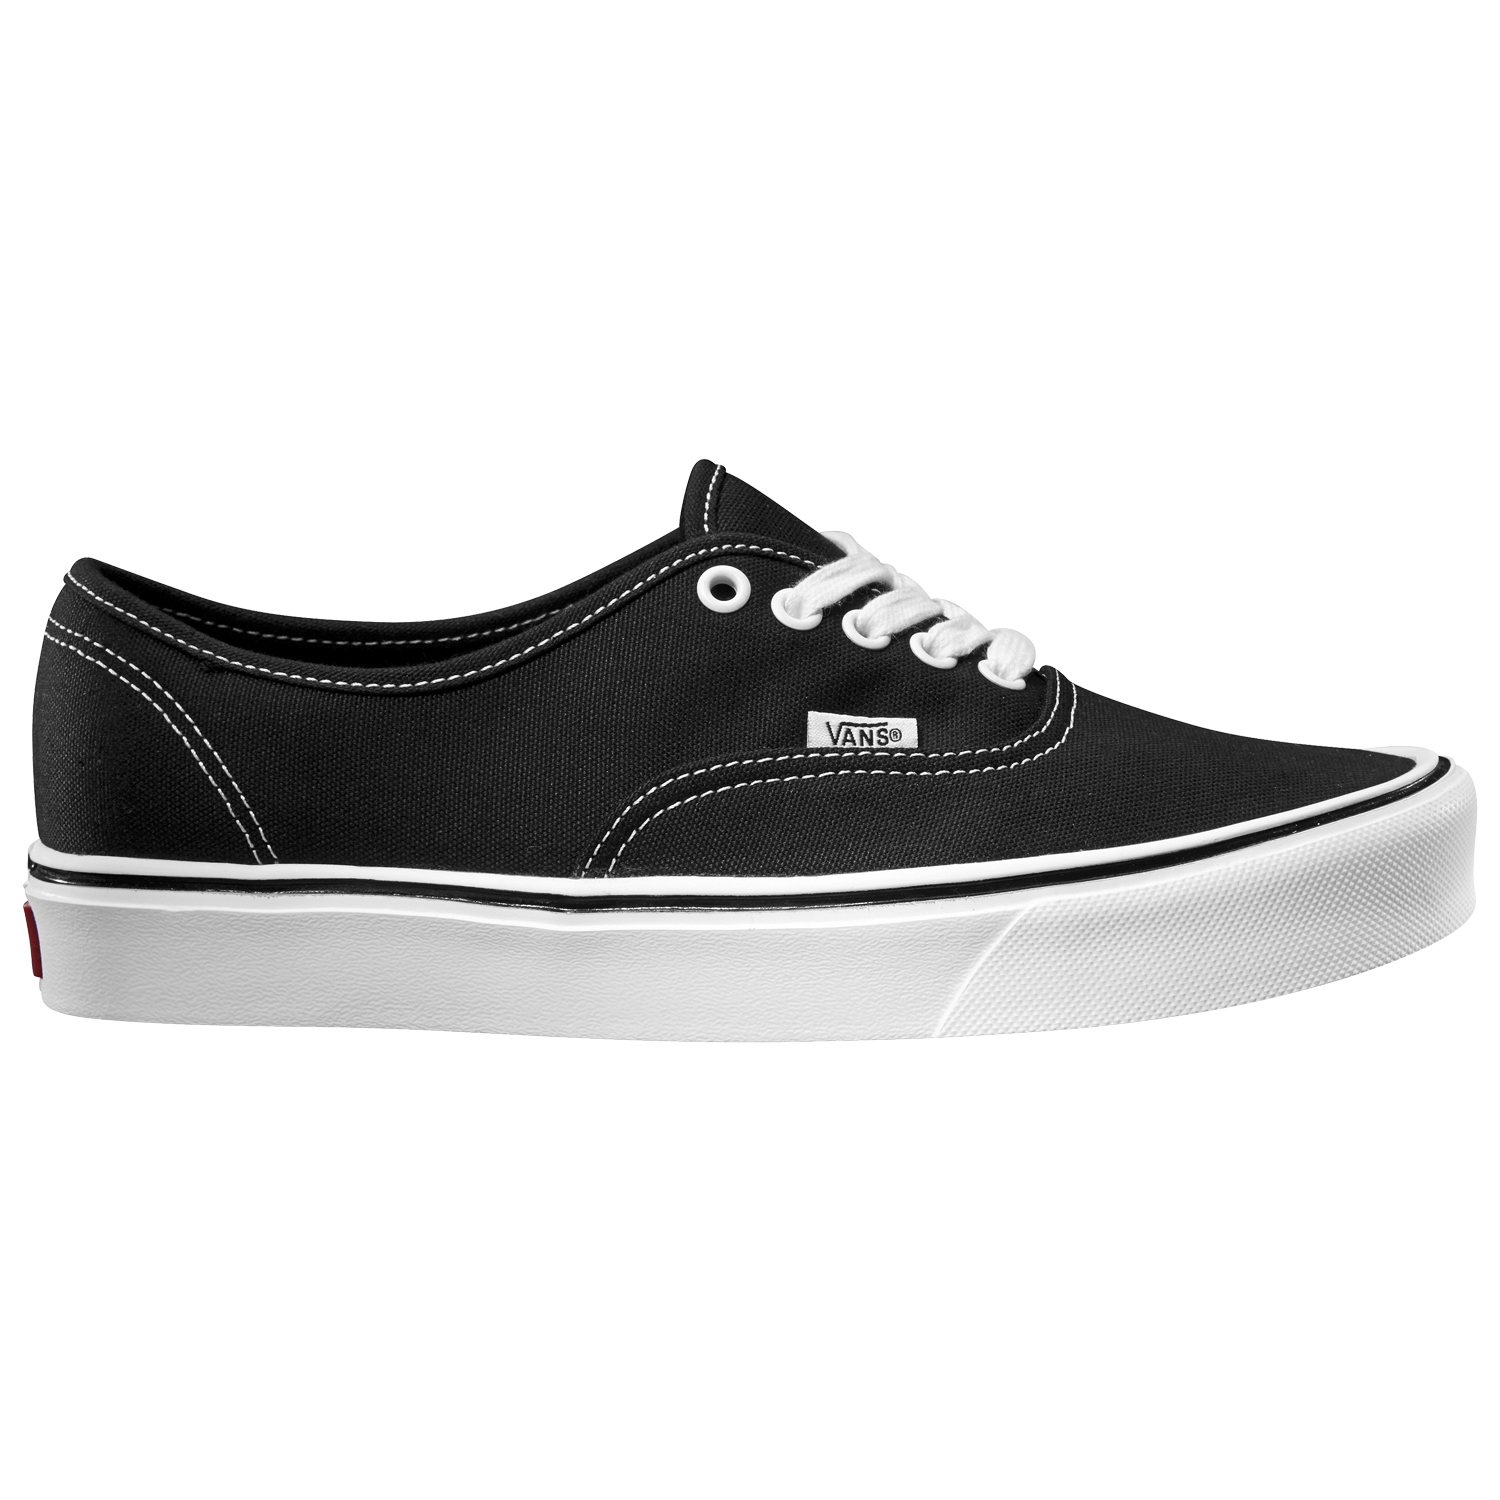 vans-authentic-lite-canvas-black-white-129-90